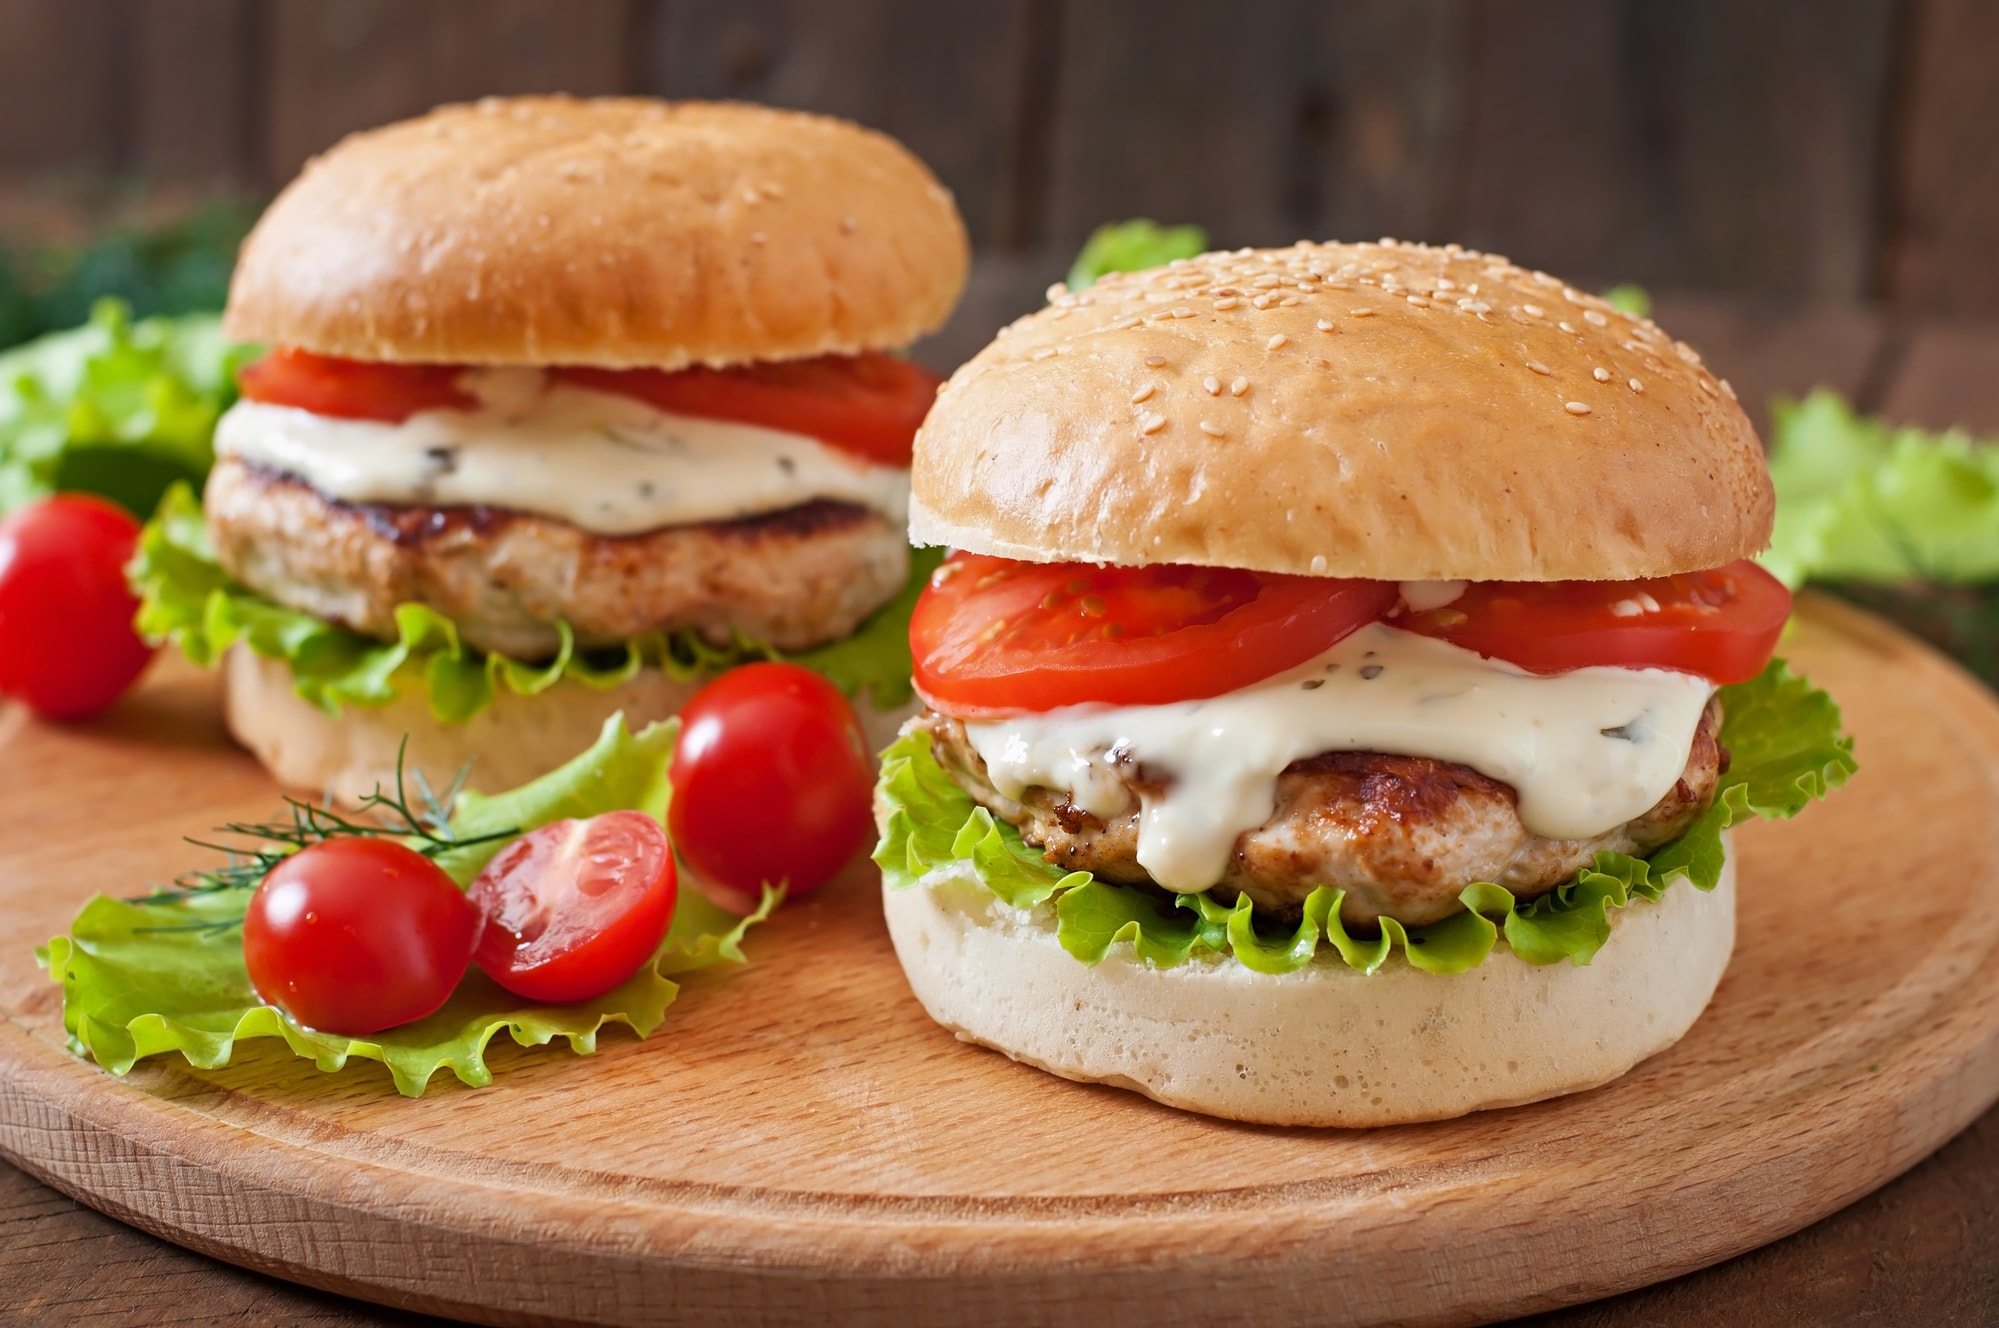 Healthy Meal Plan dinner is the perfect Turkey Ranch Burgers.